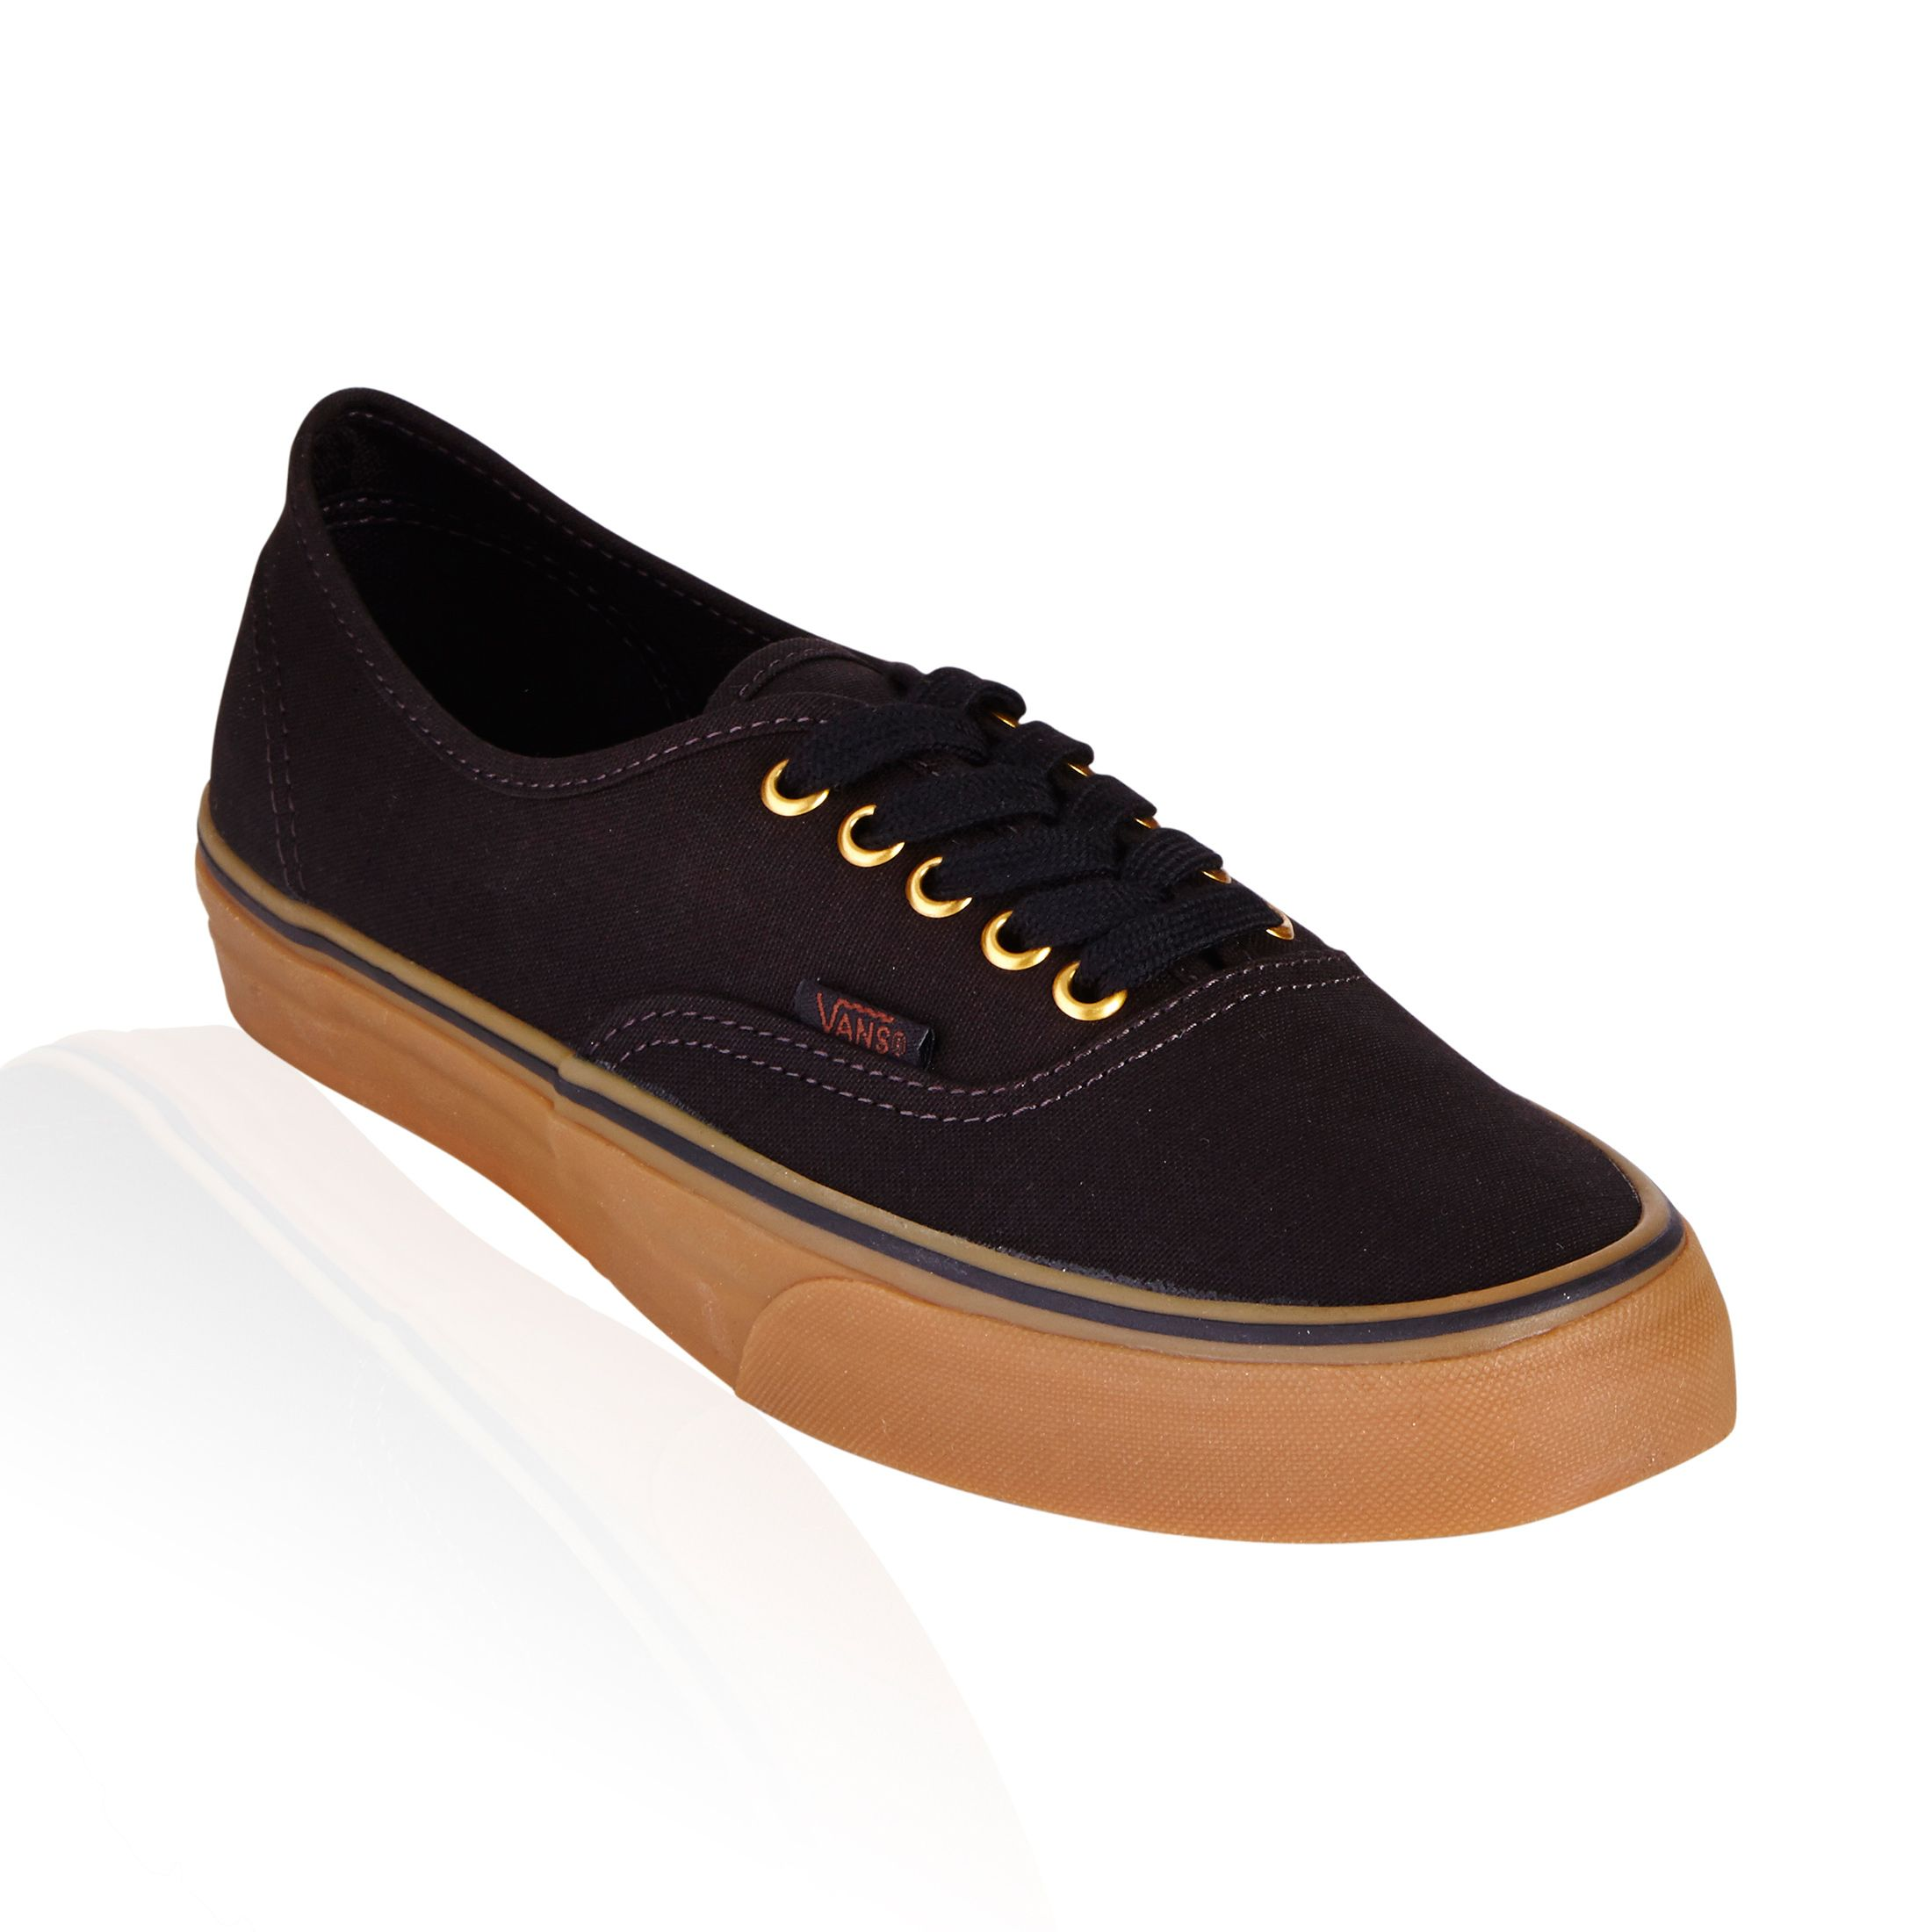 Authentic Black and Caramel Brown Rubber